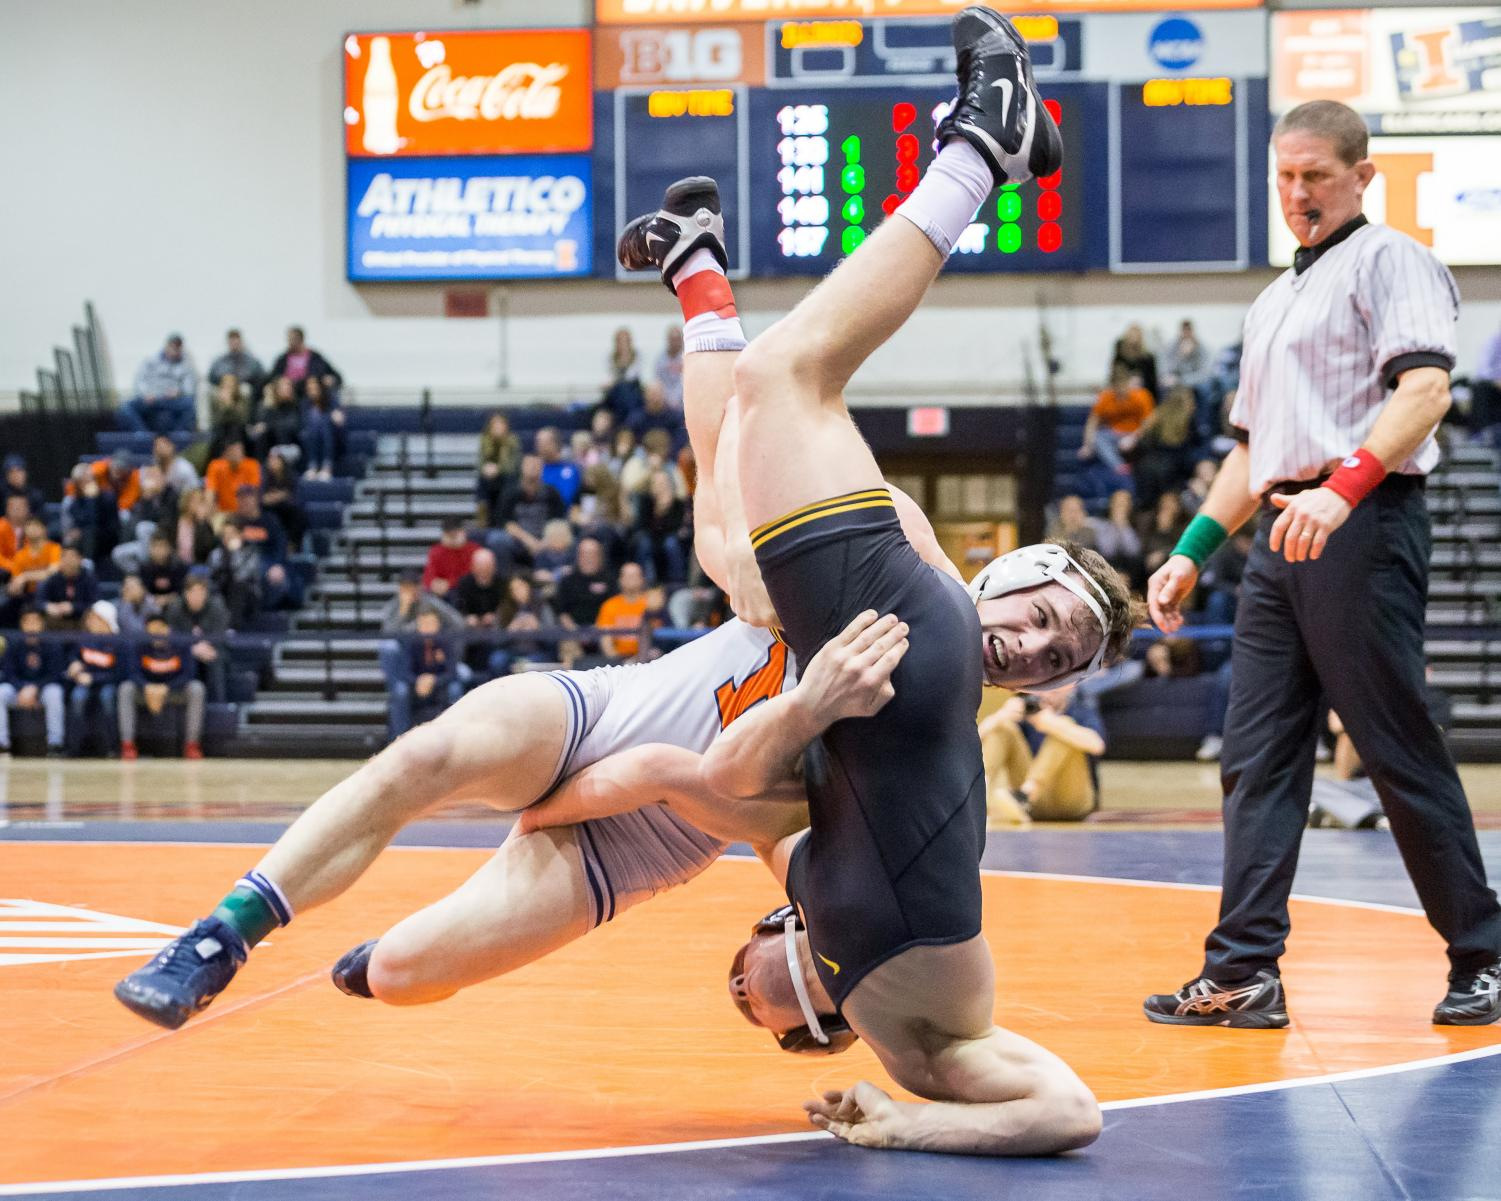 Illinois' Eric Barone wrestles with Iowa's Kaleb Young in the 157-pound match at Huff Hall on Friday. The Illini lost 31-8.